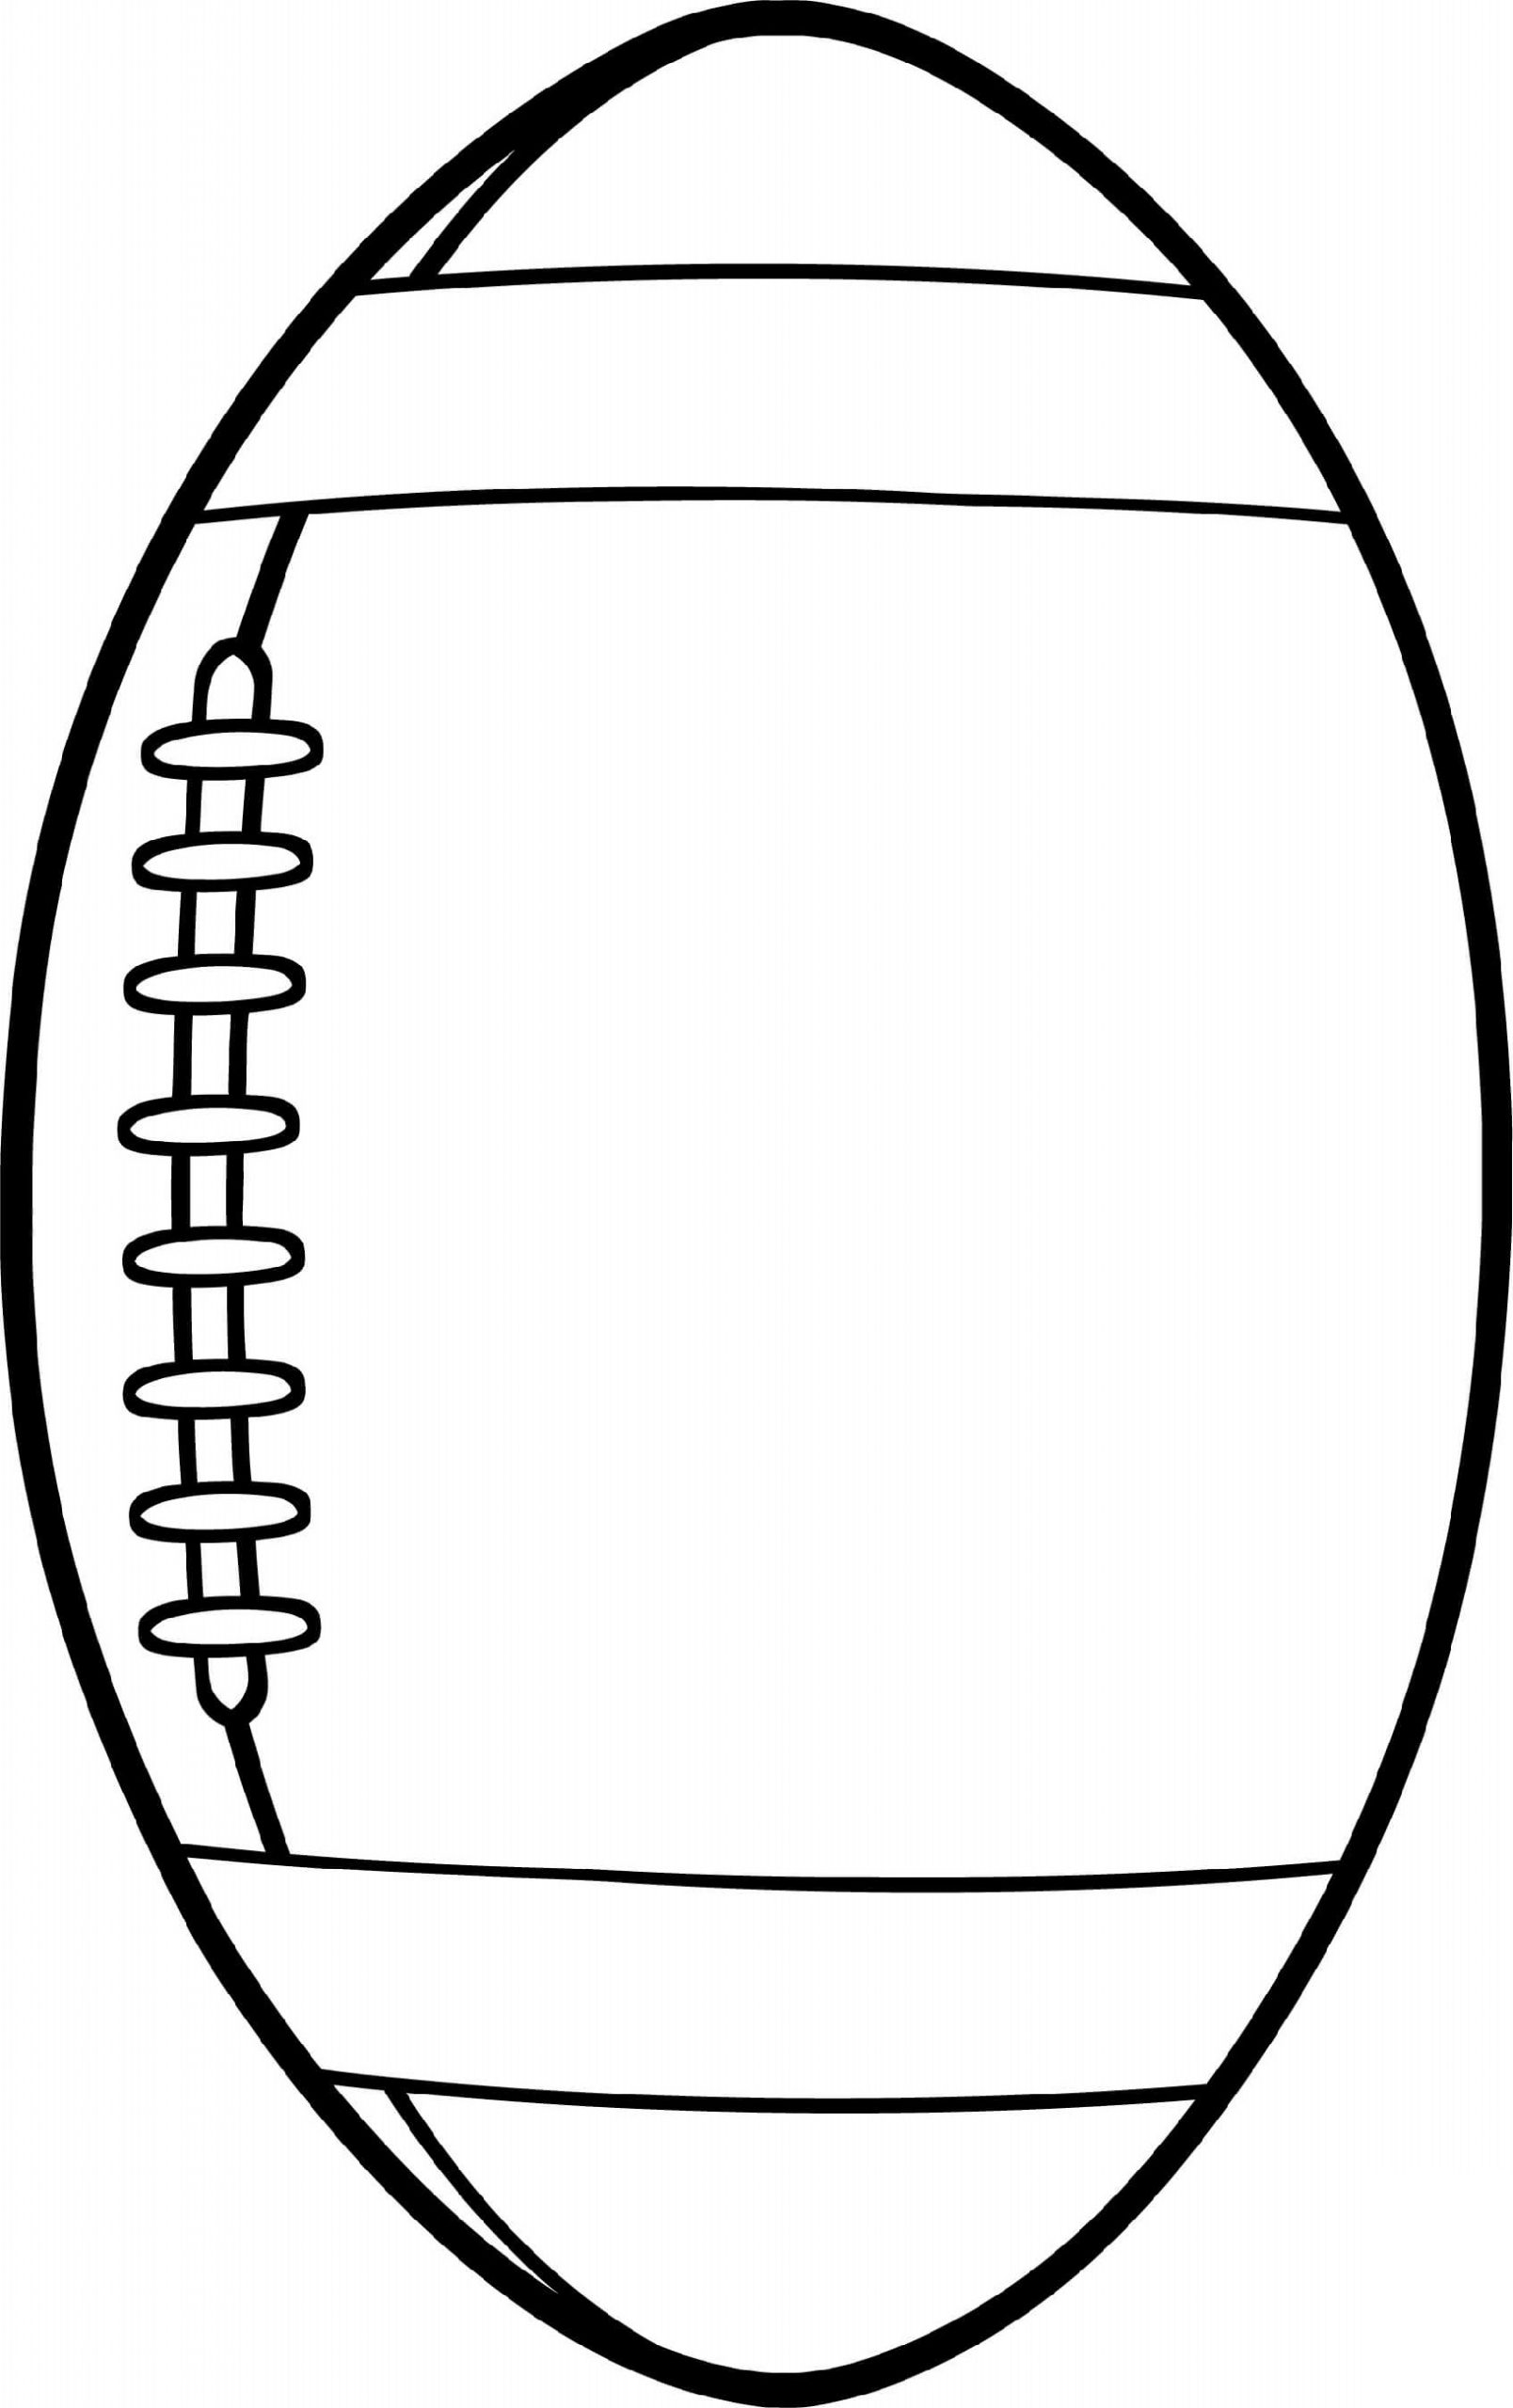 Ball Football Coloring Pages